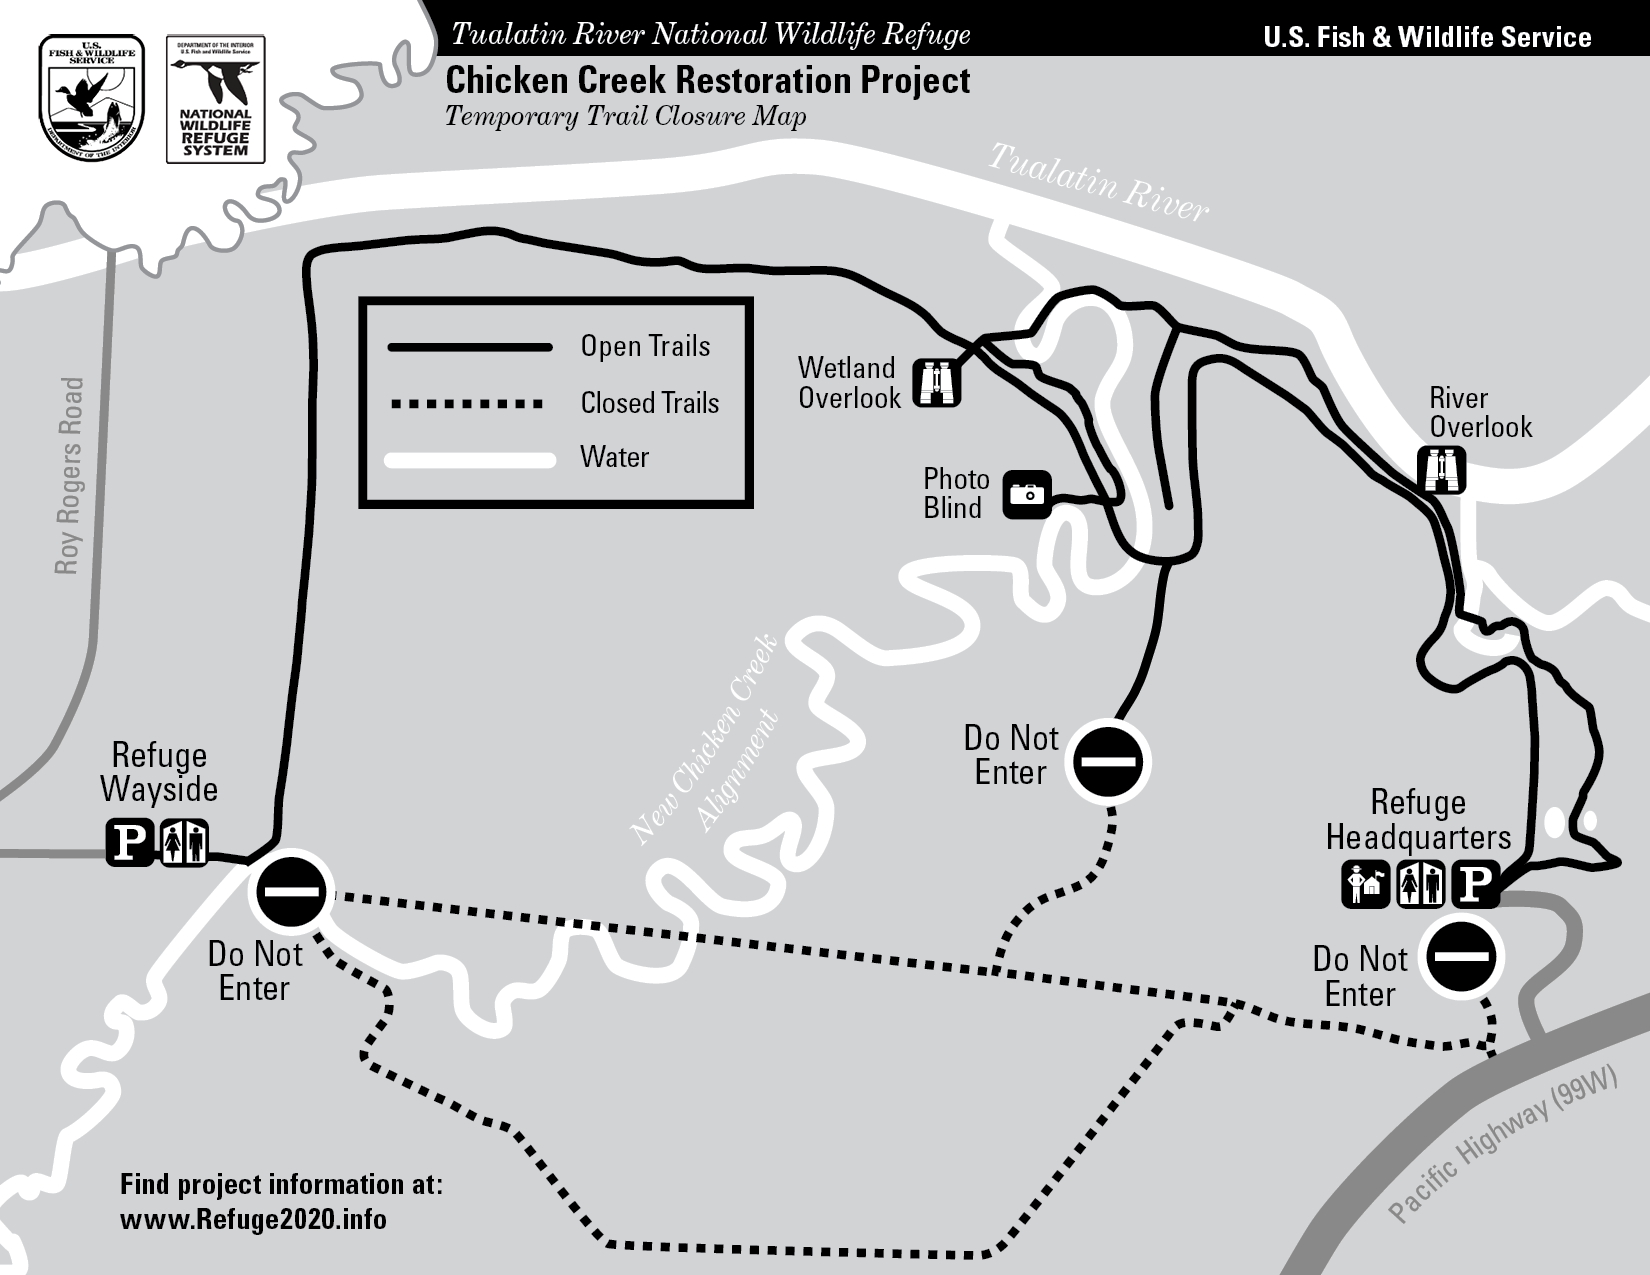 During delivery of woody debris, the dotted portions of the trail are closed. Signs are also posted onsite.